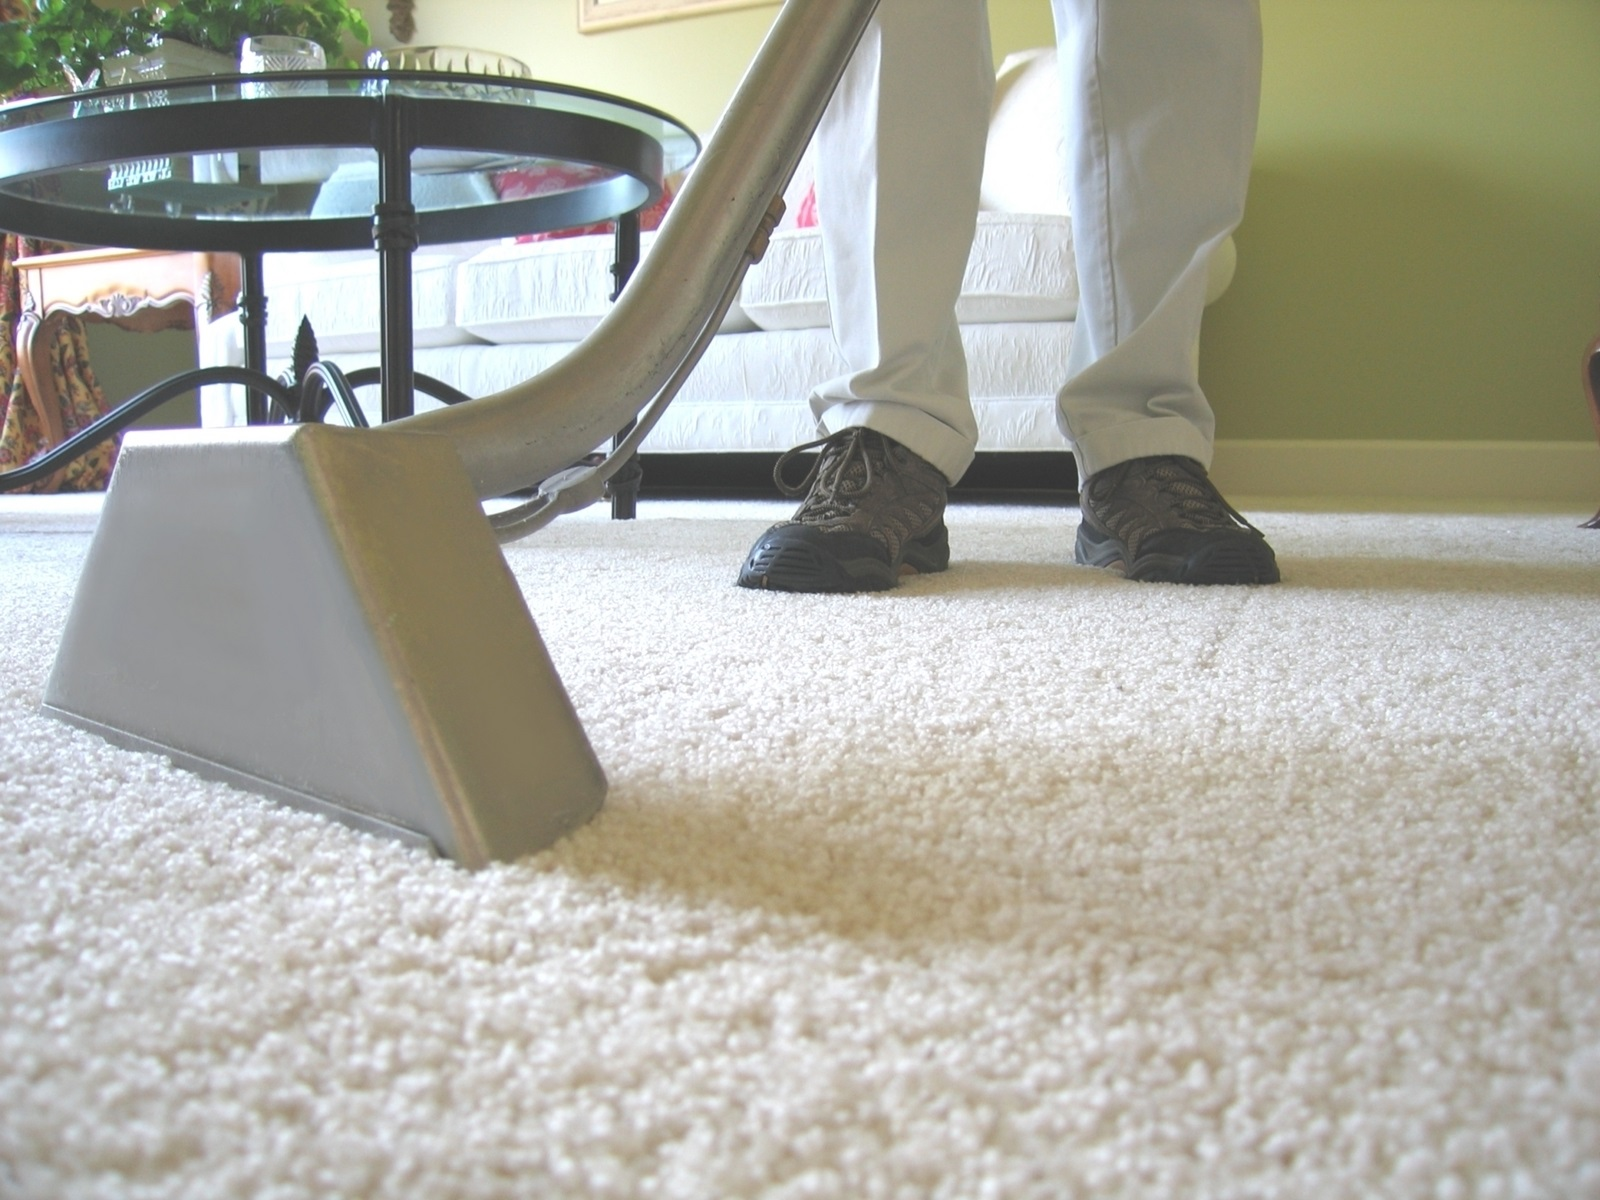 carpet cleaning with cleaner image 3 of 8